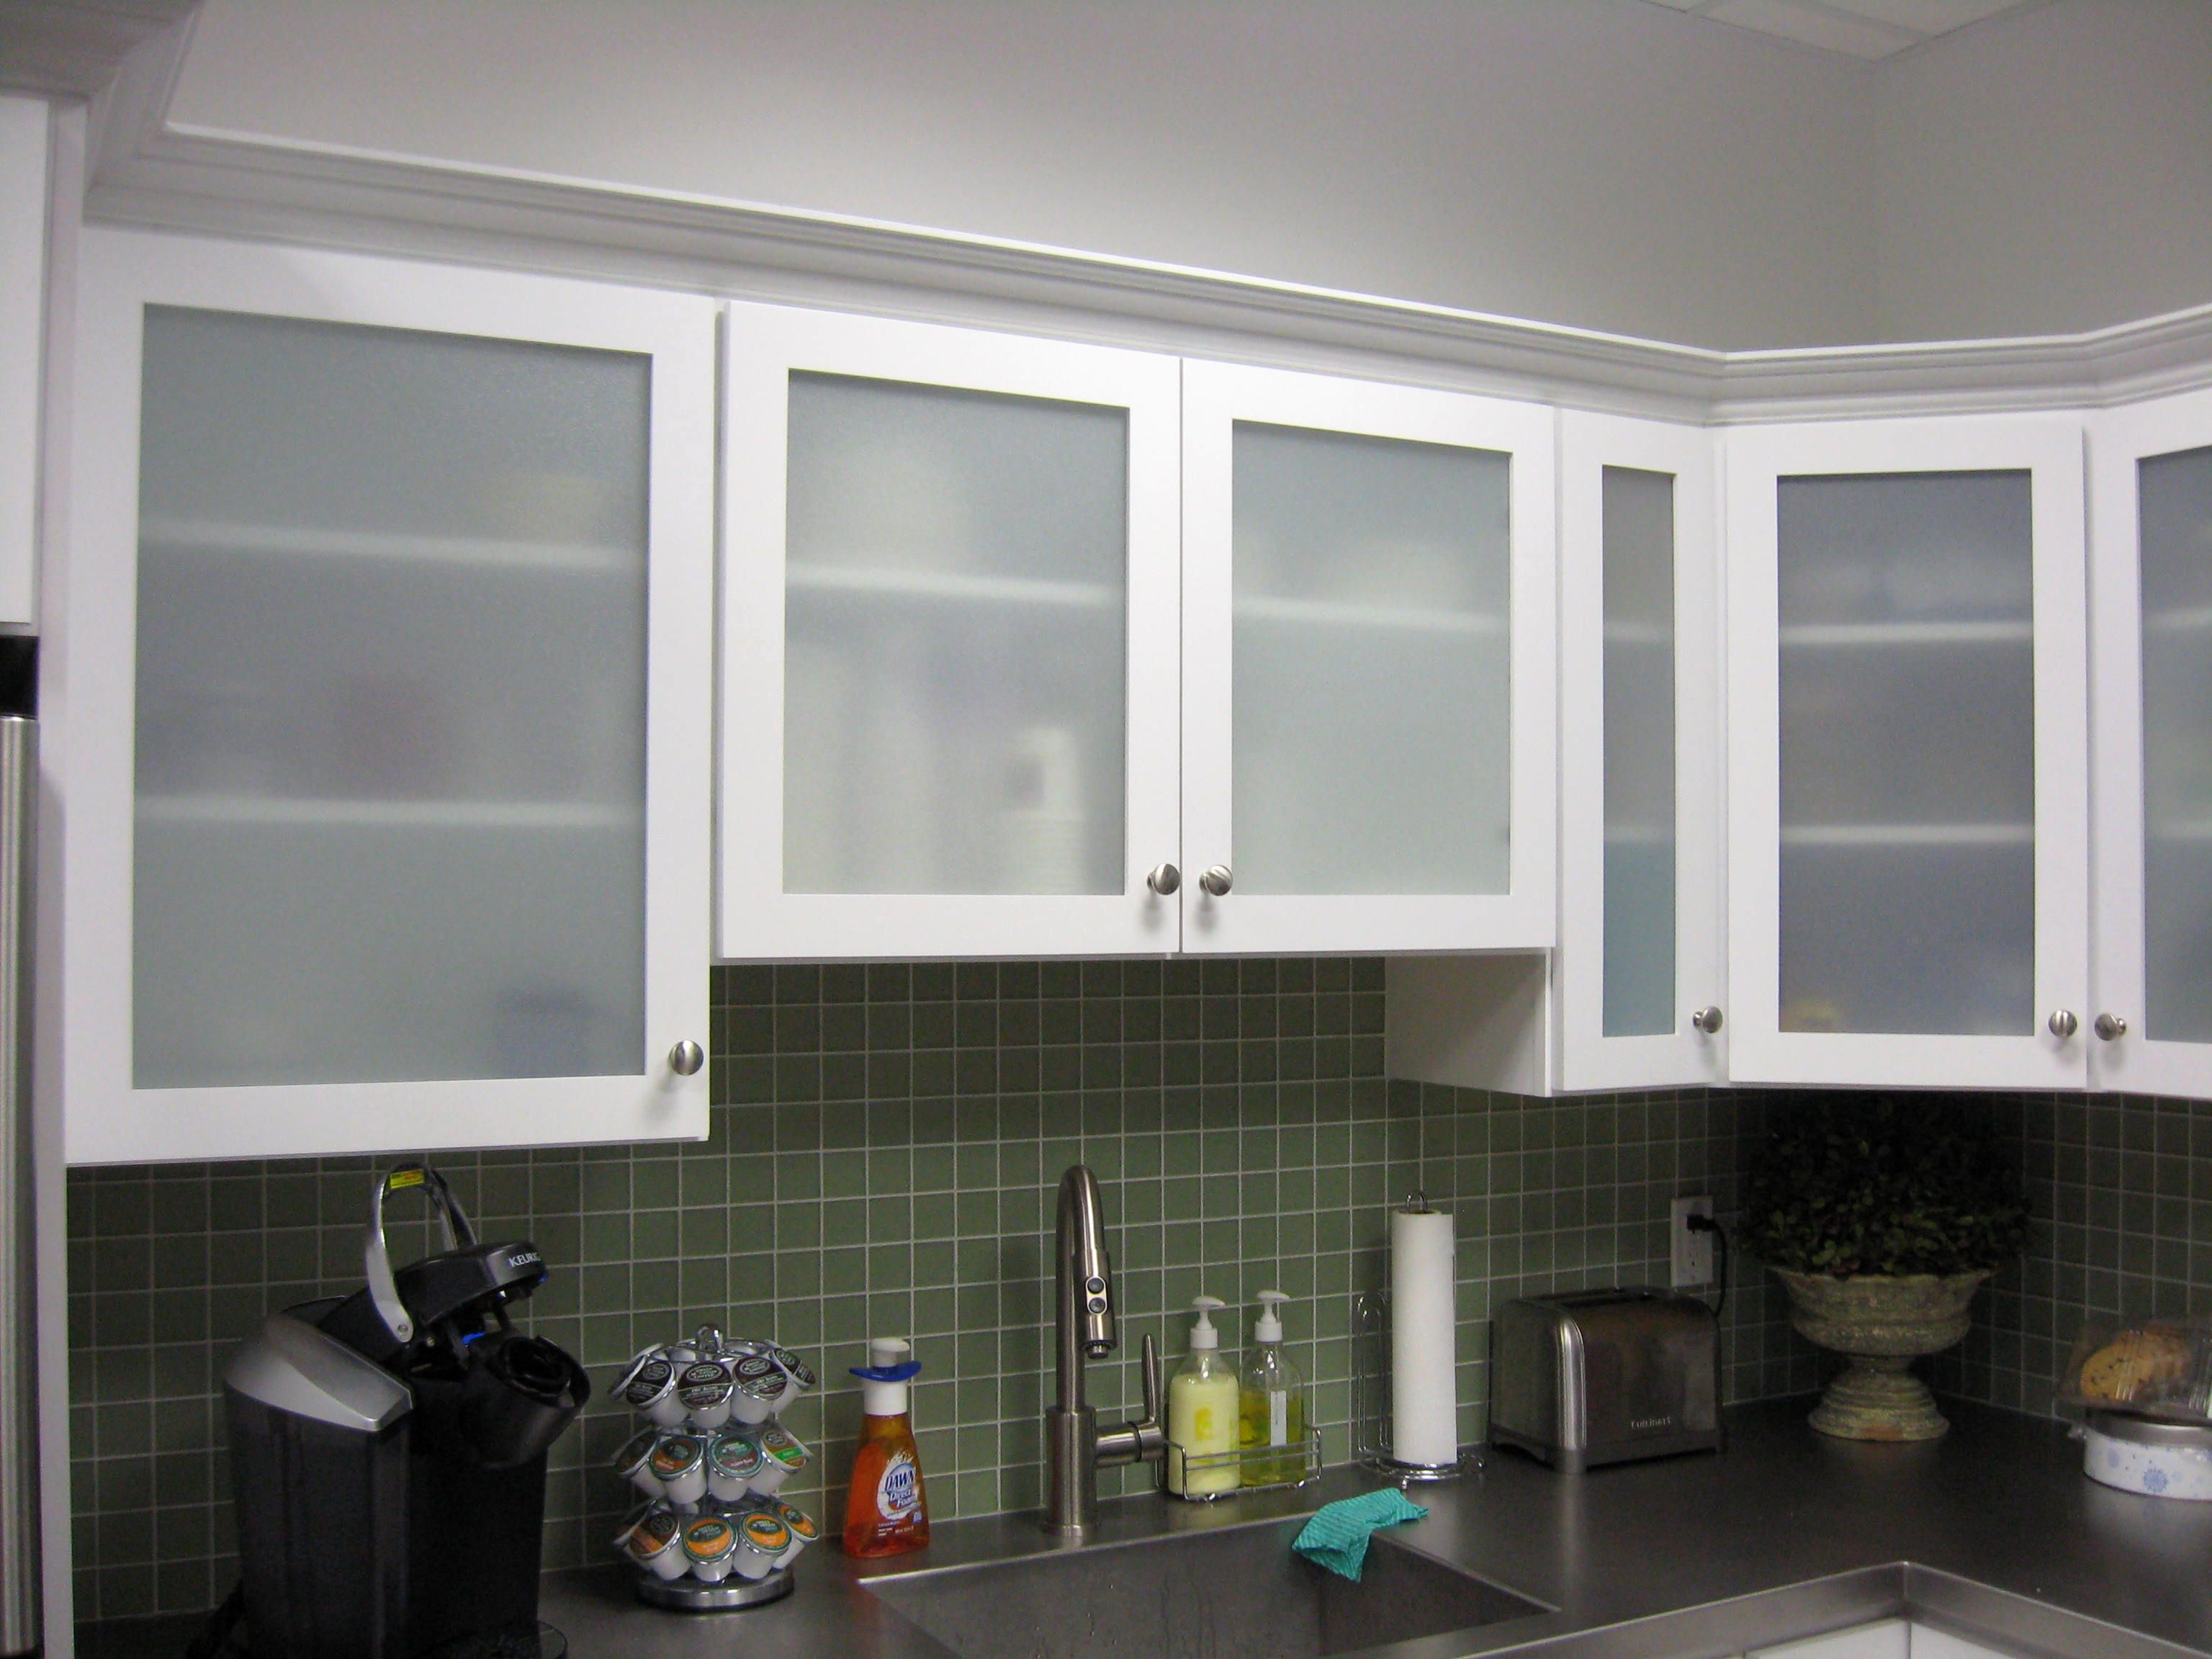 Common Kitchen Design Mistakes Why Is The Cabinet Above Sink Smaller